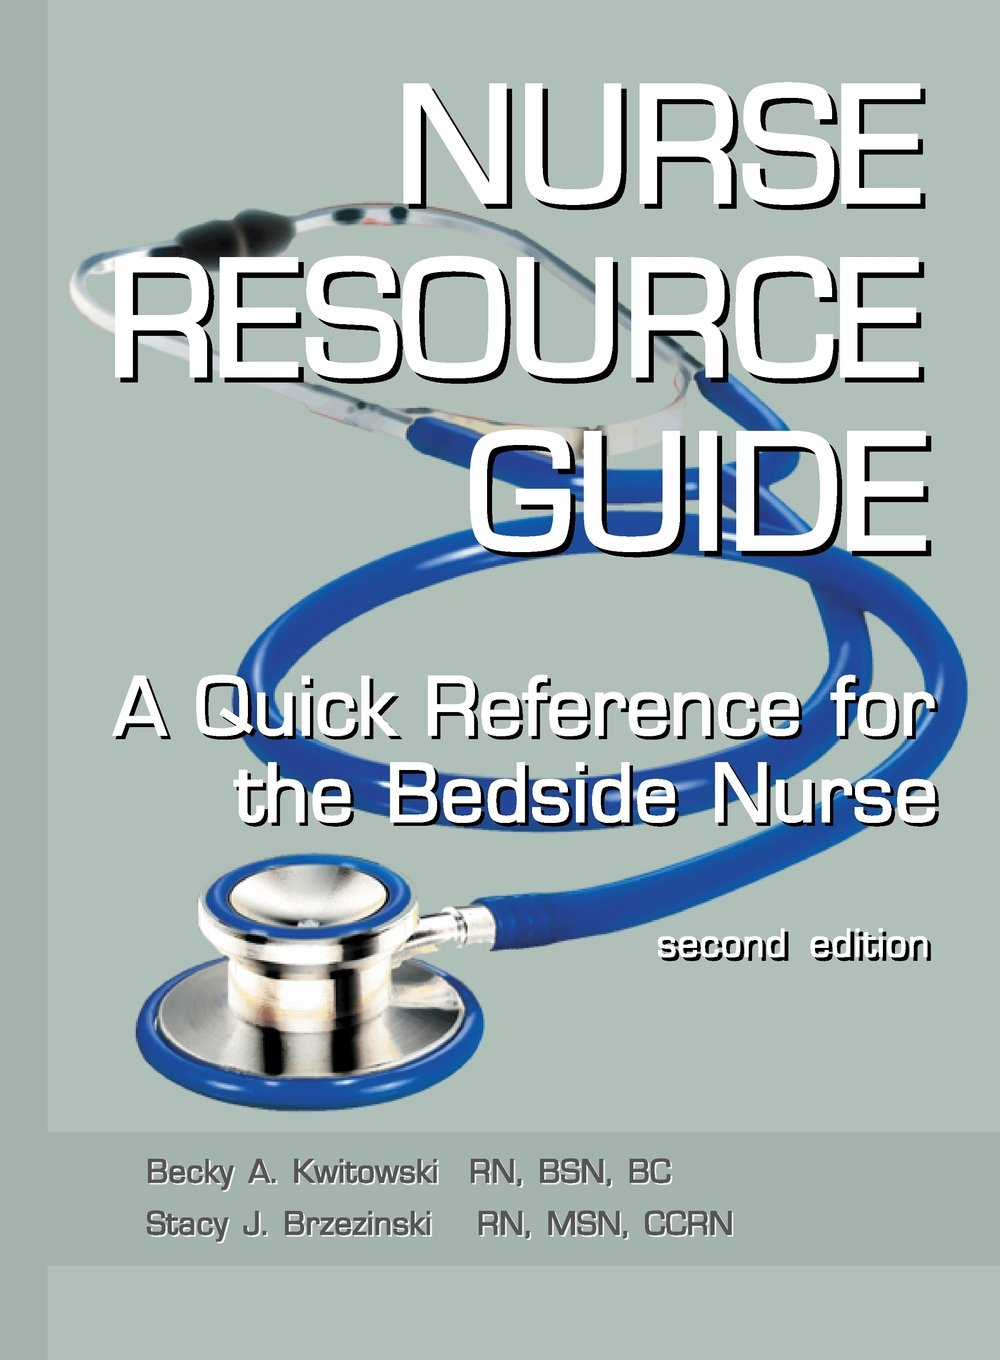 NURSE RESOURCE GUIDE: A Quick Reference Guide for the Bedside Nurse: RN BSN  Kwitowski, RN MSN Brzezinski: 9780692308073: Amazon.com: Books